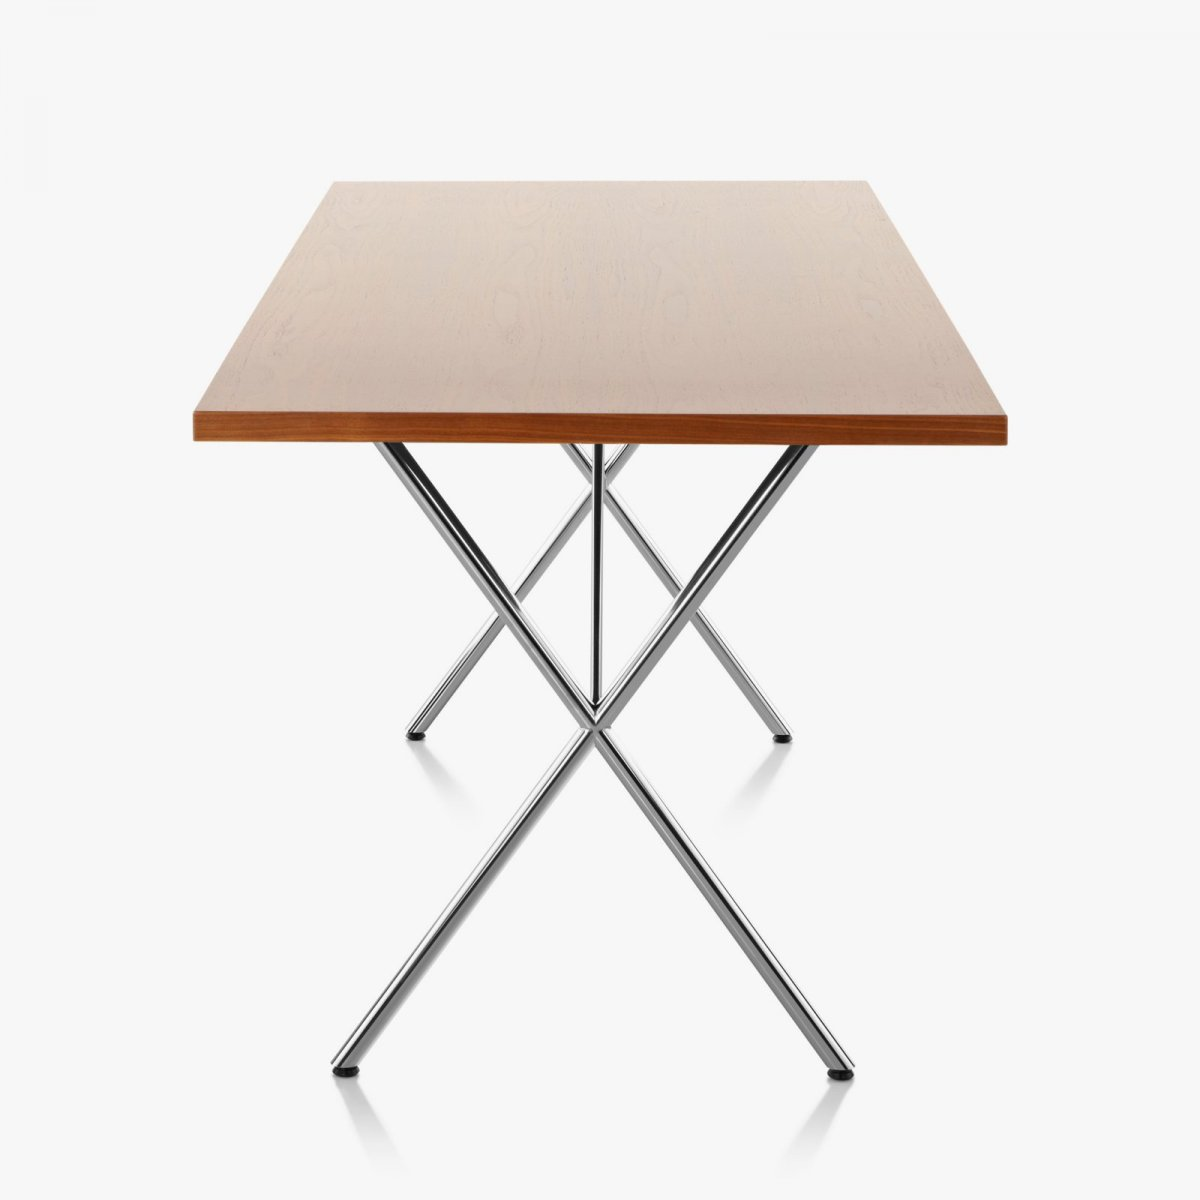 Nelson X-Leg Table, side view.